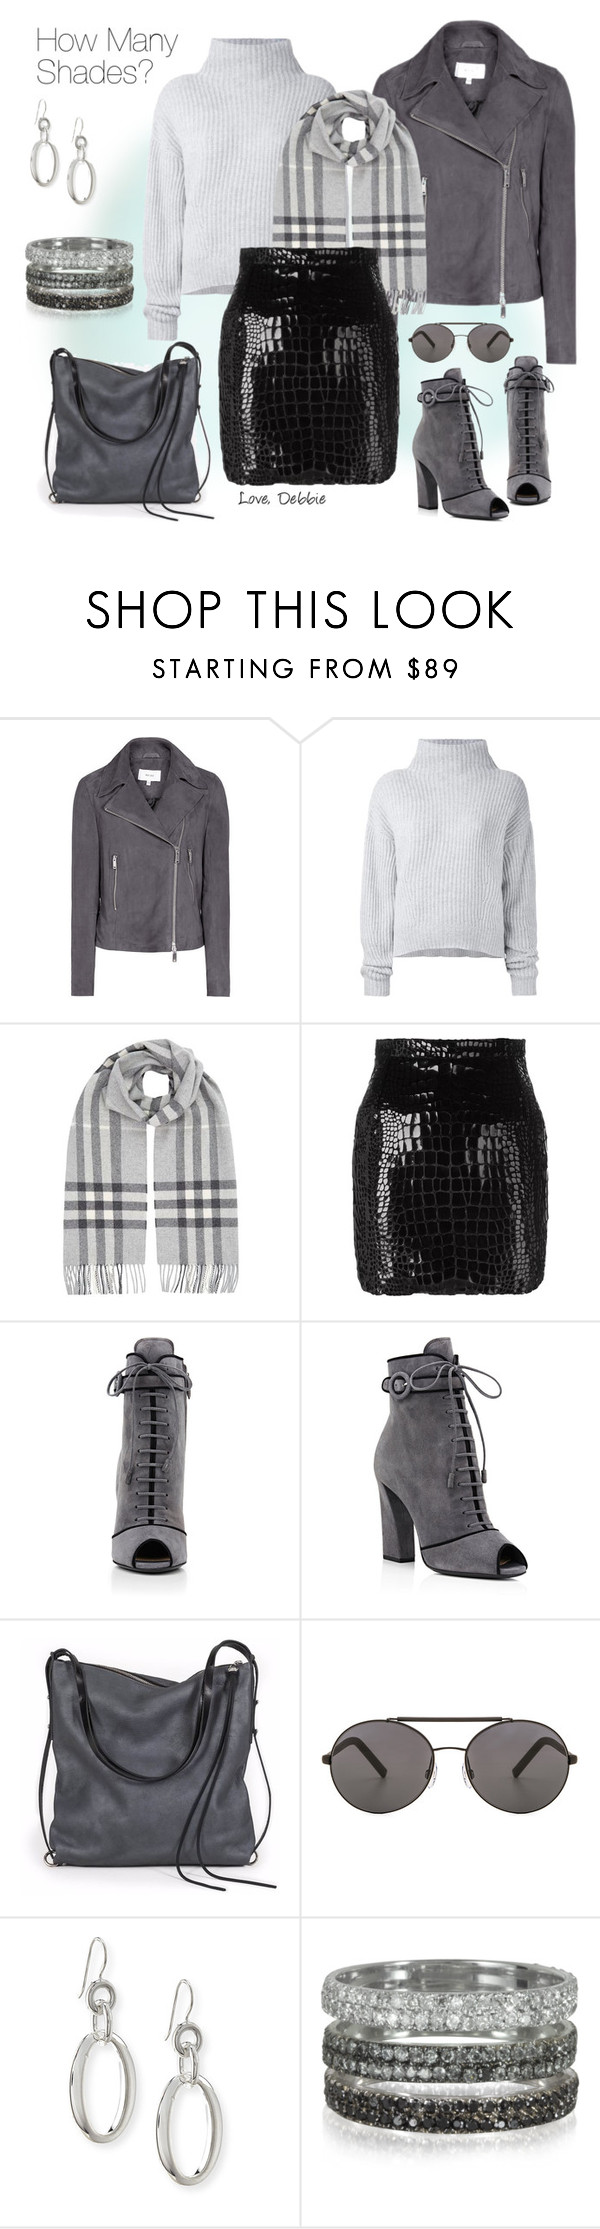 """How Many Shades?"" by debbie-michailides ❤ liked on Polyvore featuring Le Kasha, Burberry, Yves Saint Laurent, Prada, Ina Kent, Seafolly, Ippolita and Bernard Delettrez"